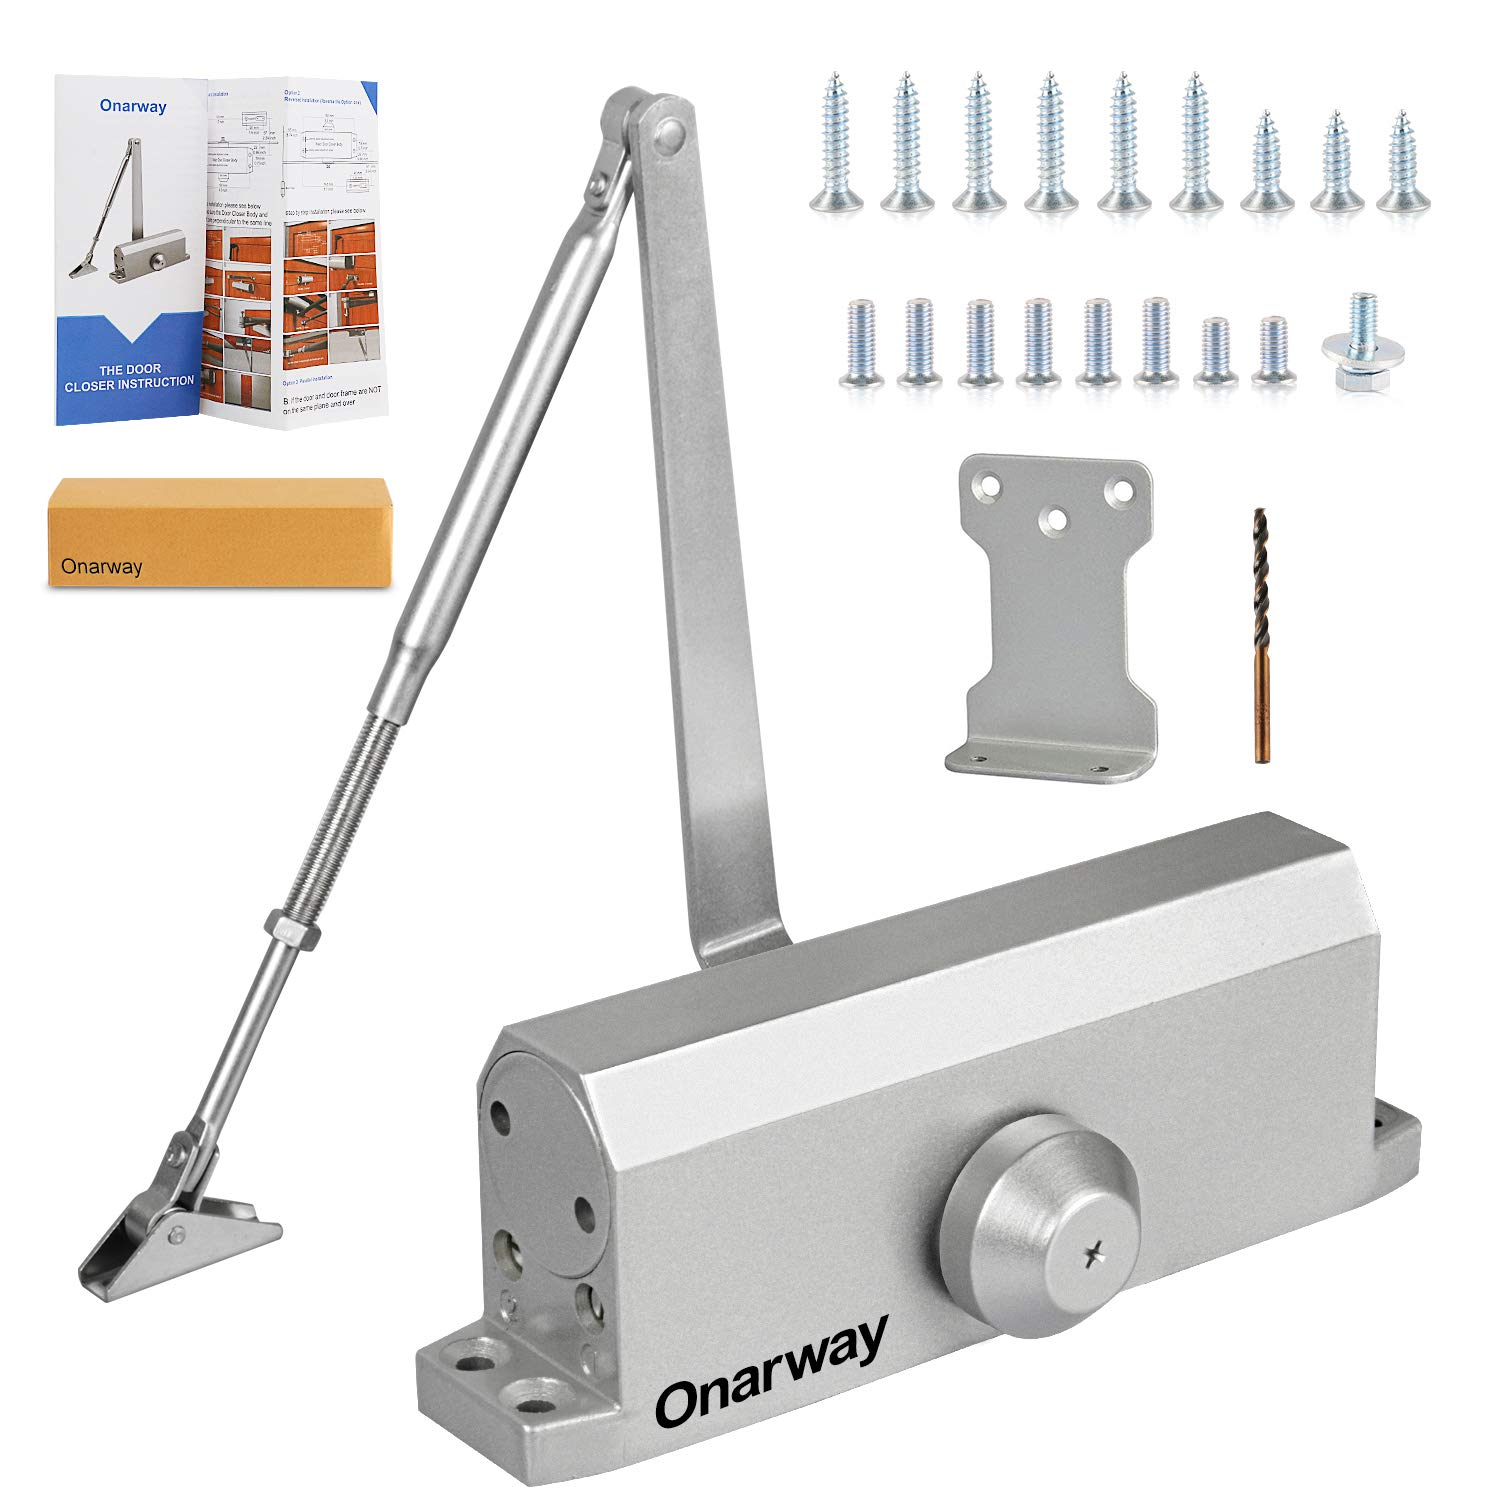 Onarway Adjustable Automatic Size 3 Spring Hydraulic Door Closer//Closure for Commercial or Home Use with Fitting Template for Middle-Weight Door Parallel Bracket Included